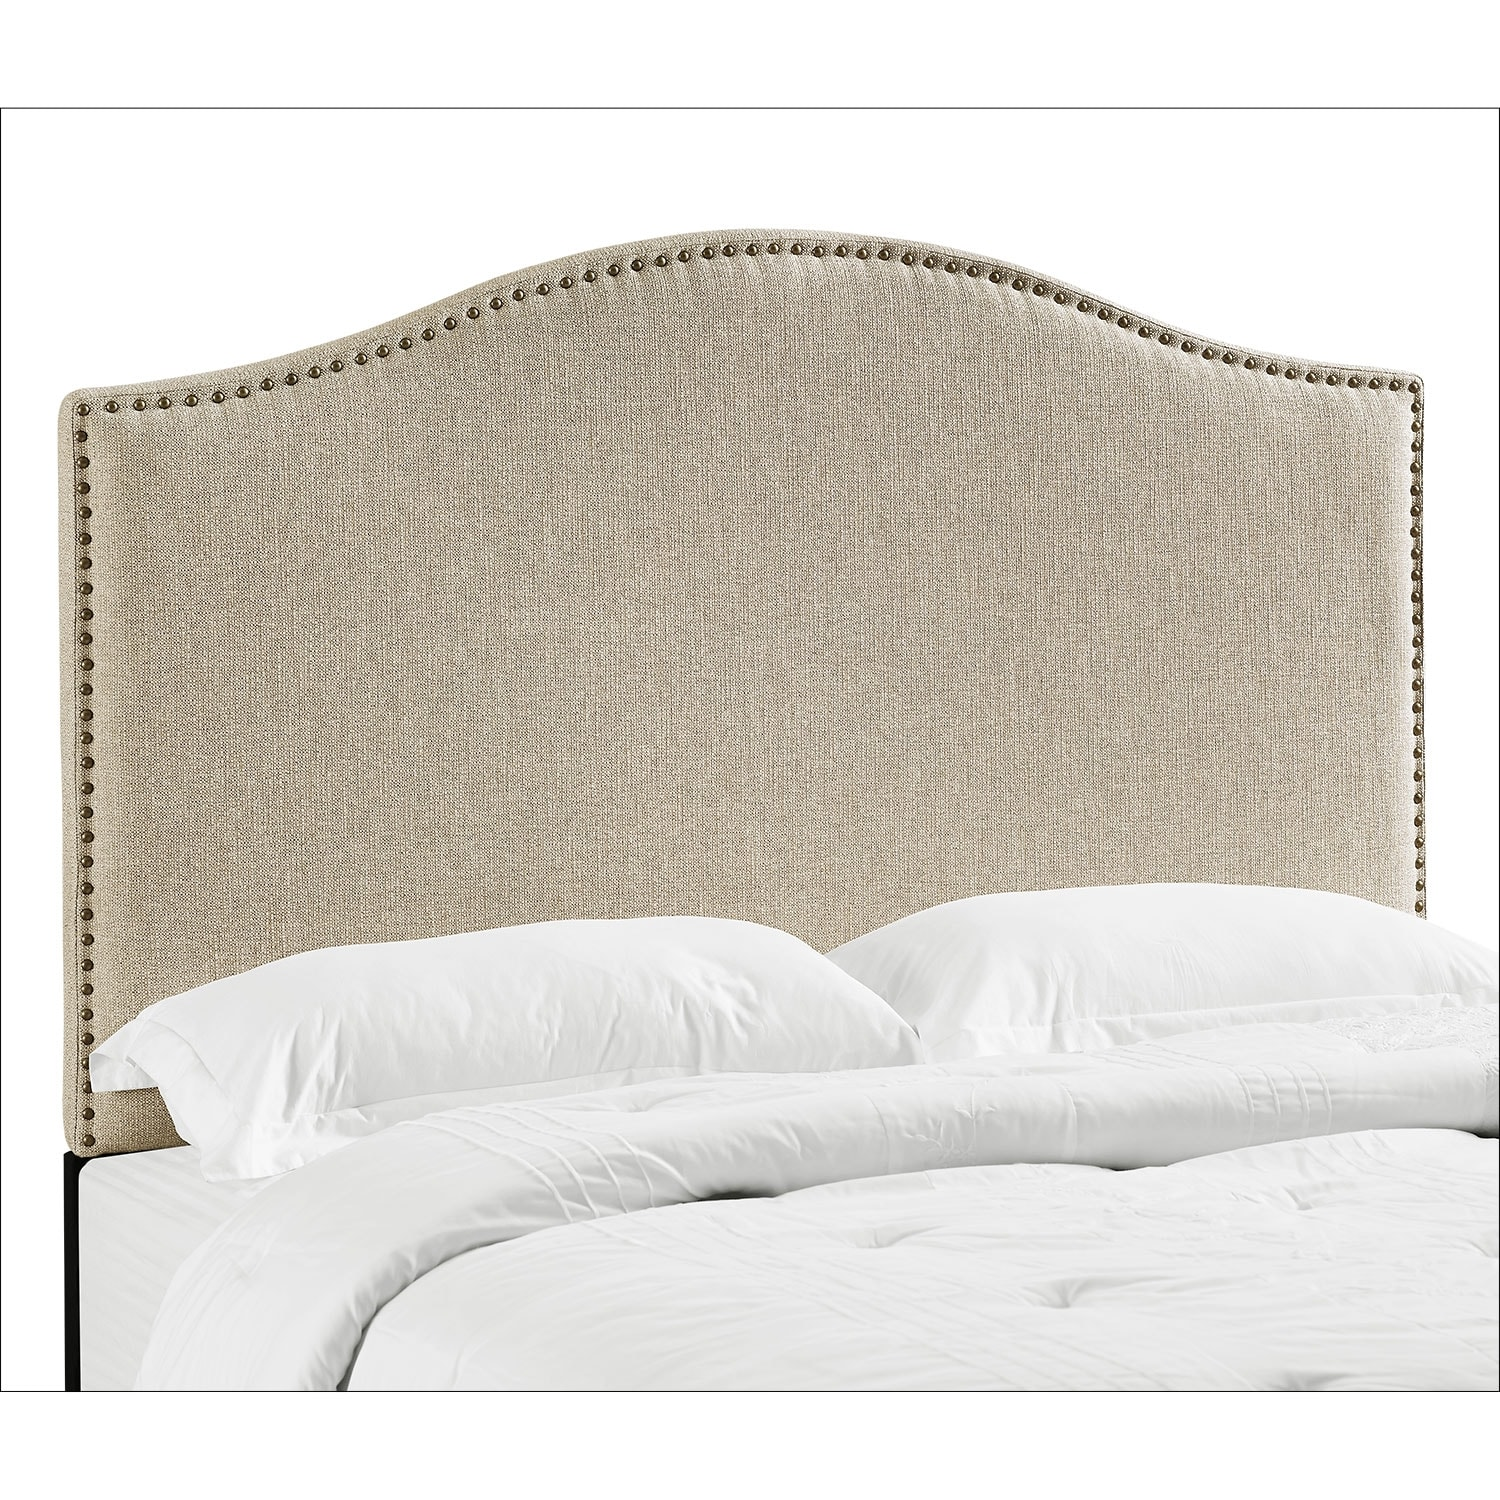 Bedroom Furniture - Wyatt Upholstered Headboard